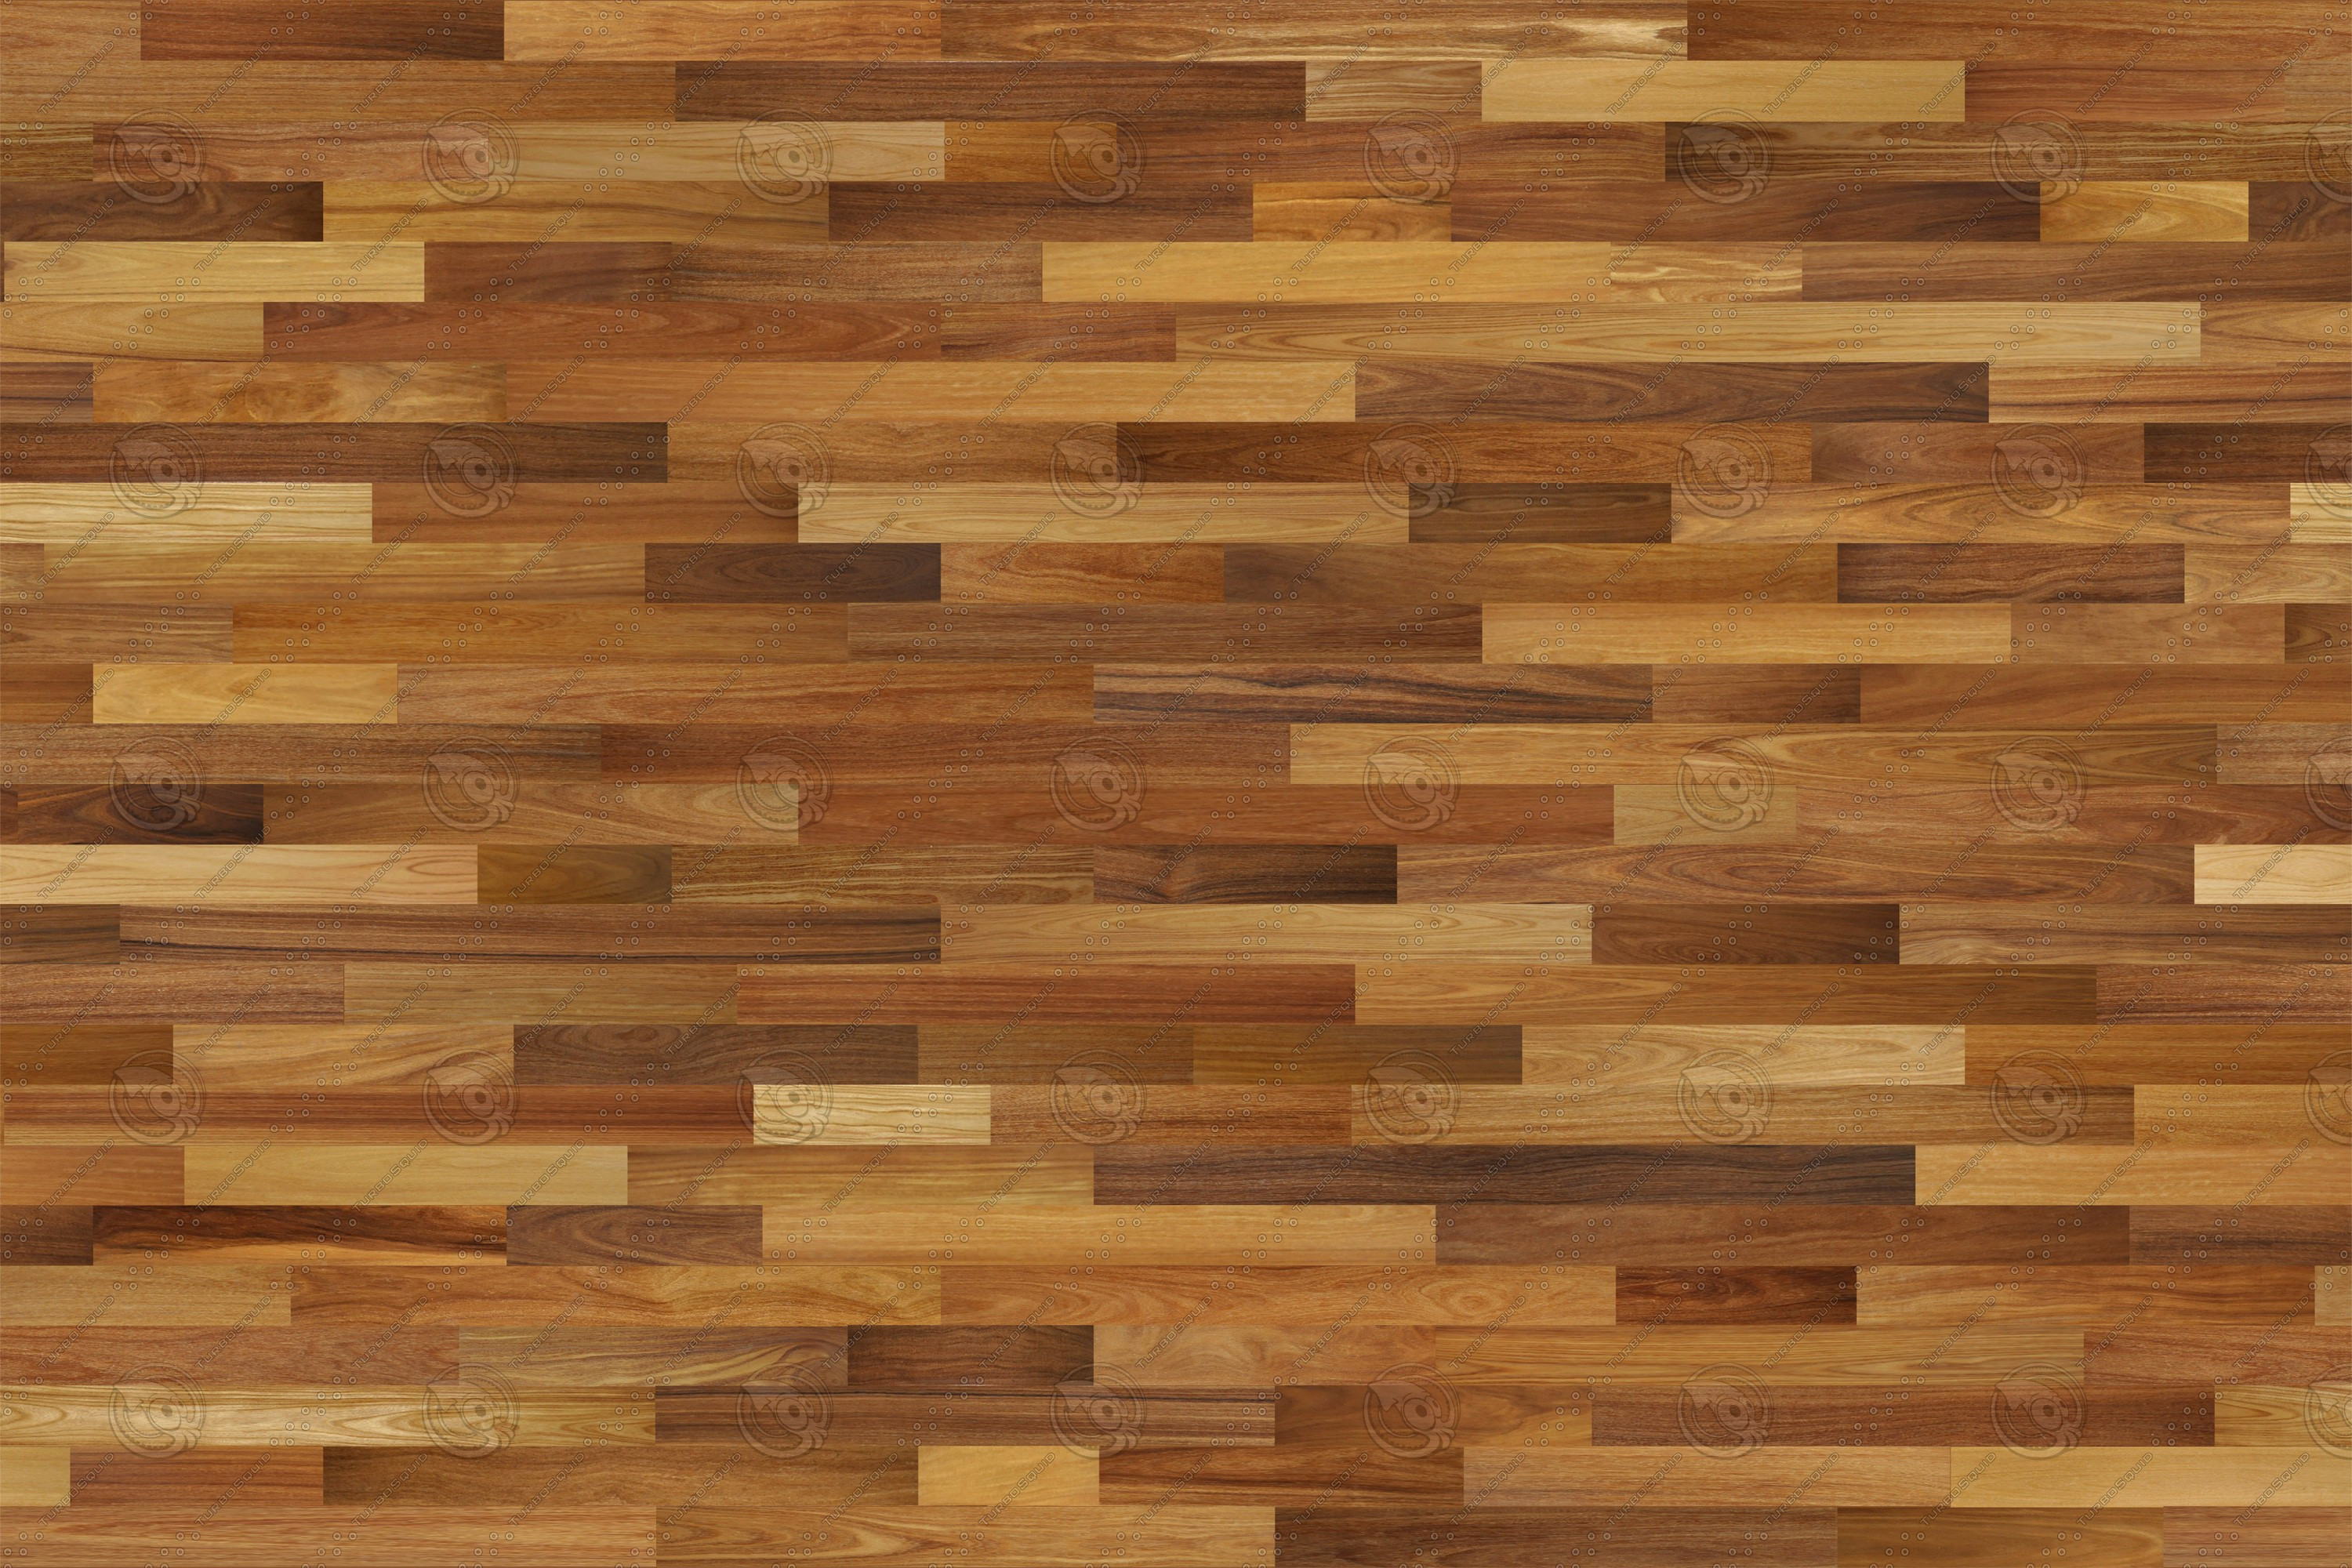 Oak Hardwood Flooring Of Hardwood Floor Patterns Best Of Oak Wood Flooring Texture top 28 Oak with Regard to Hardwood Floor Patterns Best Of Oak Wood Flooring Texture top 28 Oak Wood Floors 1 2